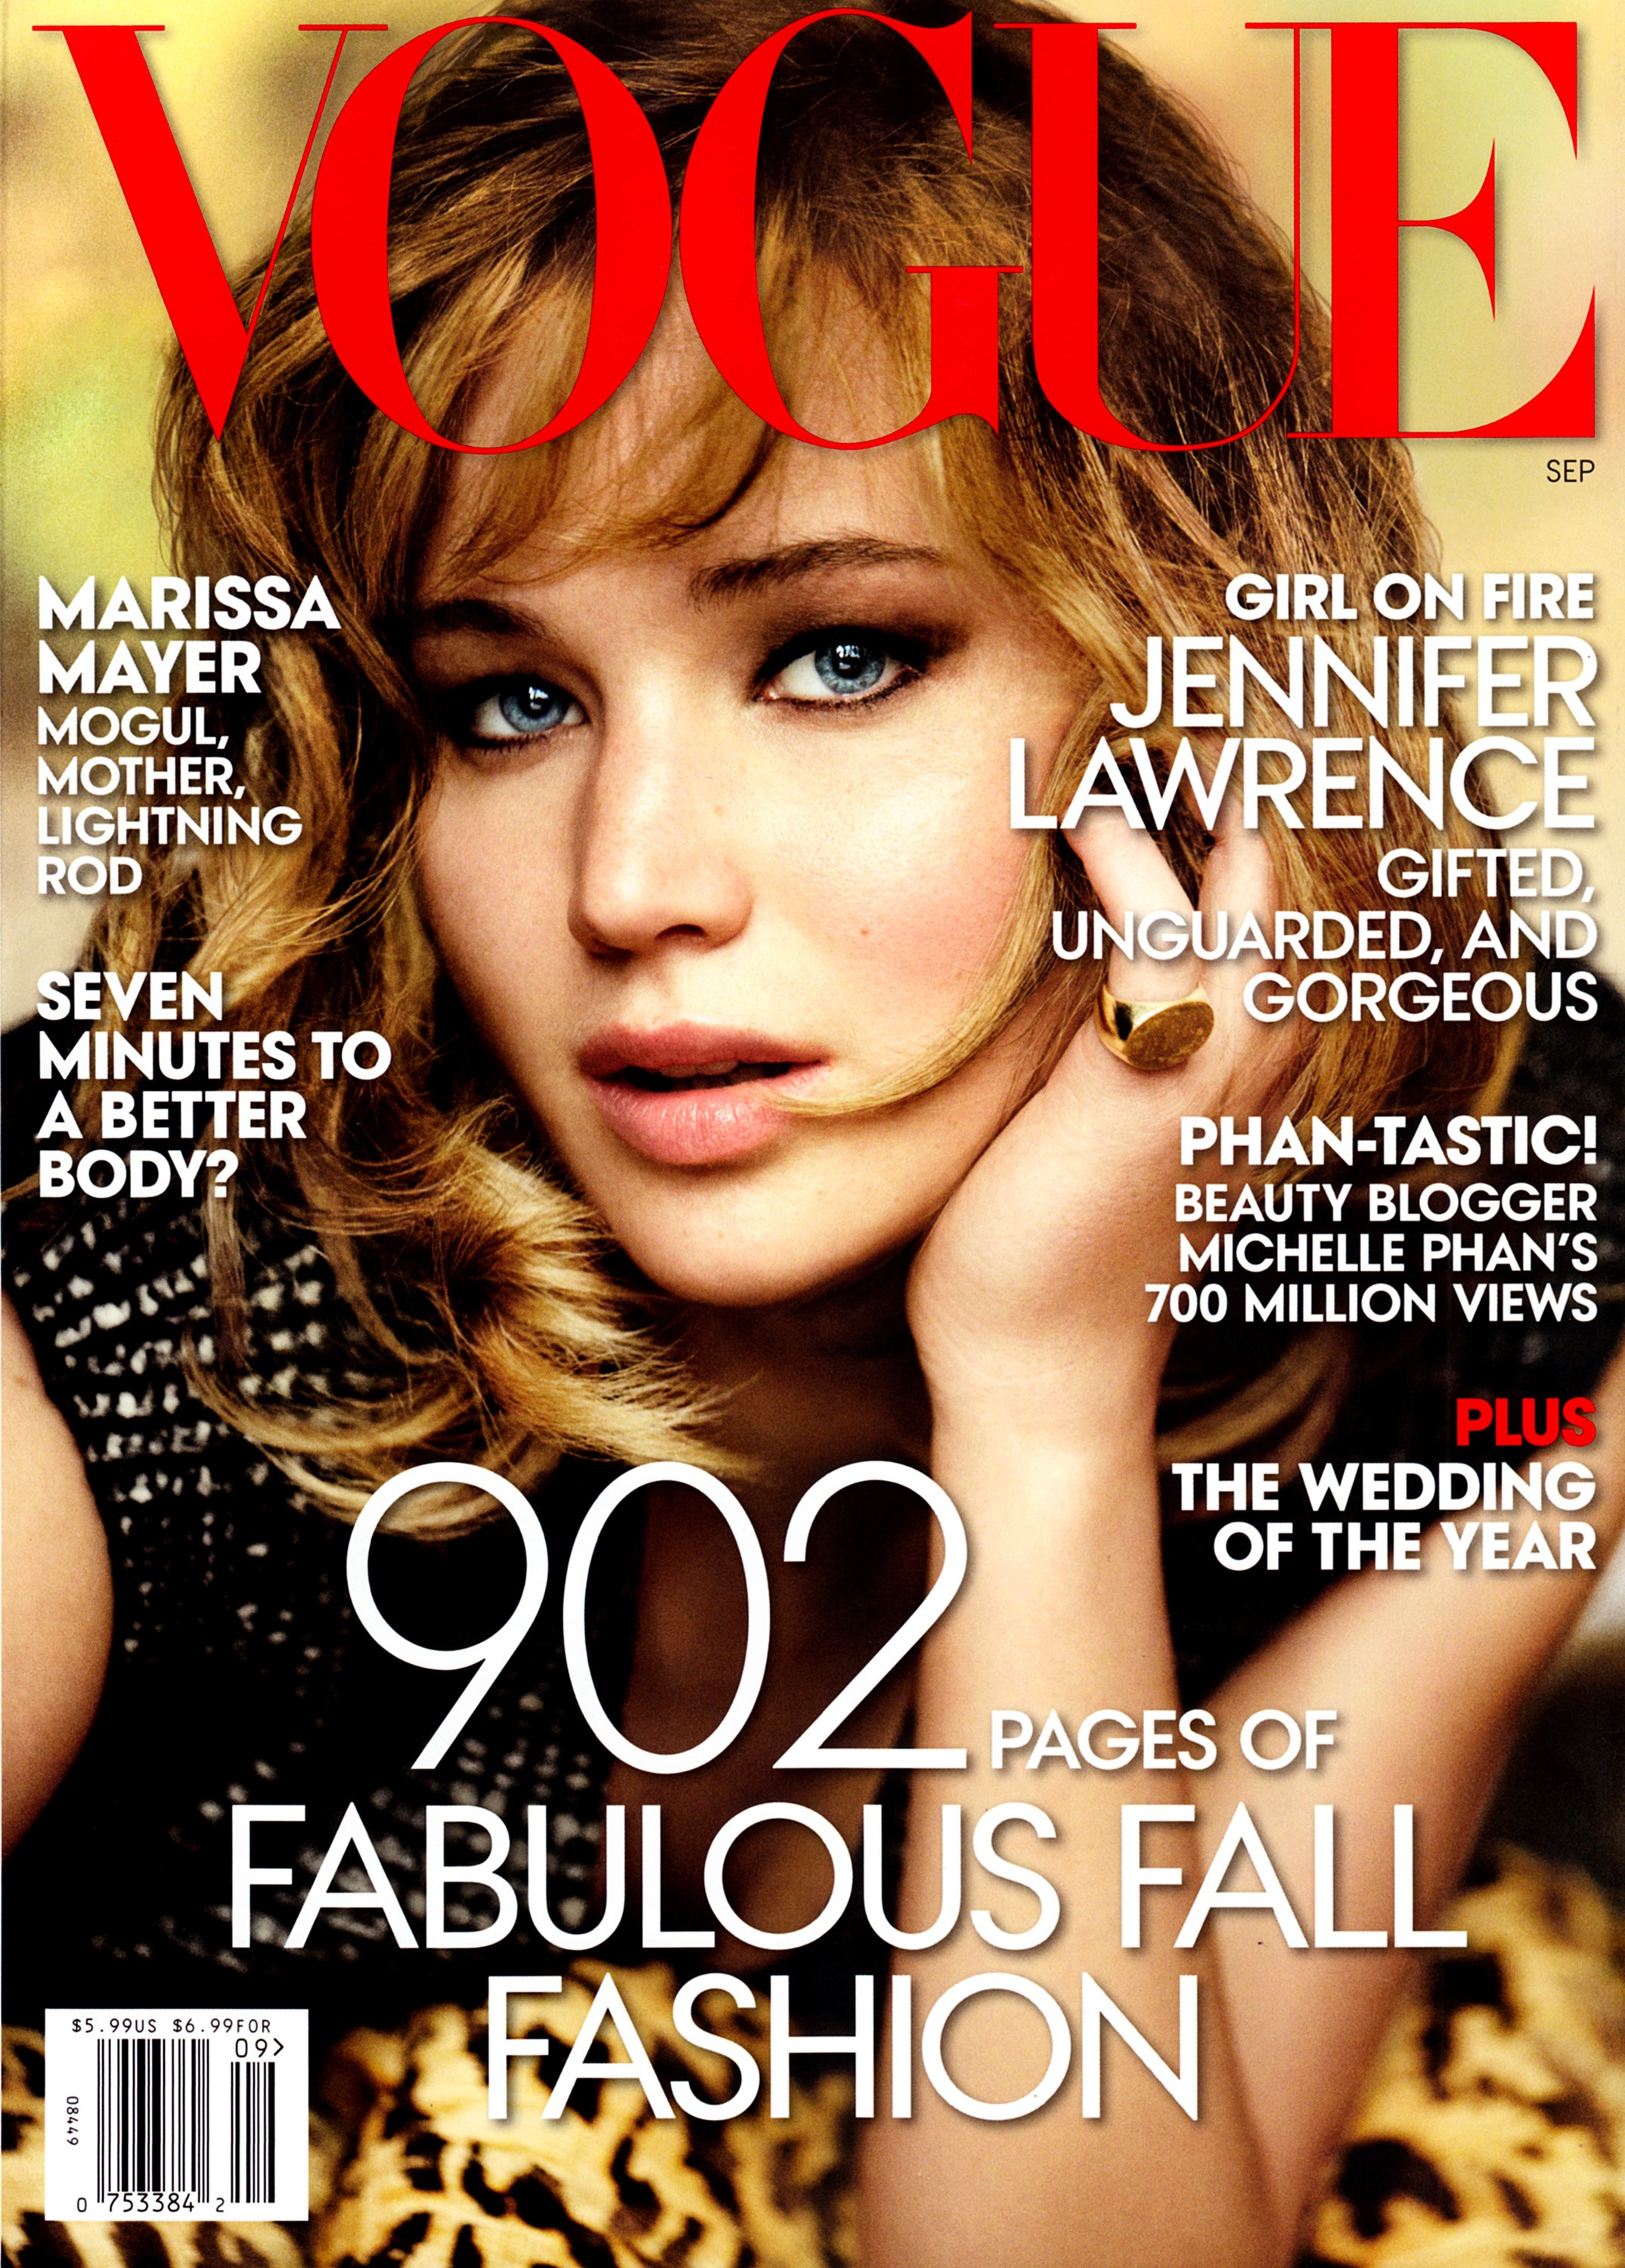 Beautiful American Actress Jennifer Lawrence Modeling For The Cover Of American Vogue Modeling As One Of The Highest Paid Actresses In The World With Acting Earnings Of $34 Million Dollars For The Year.